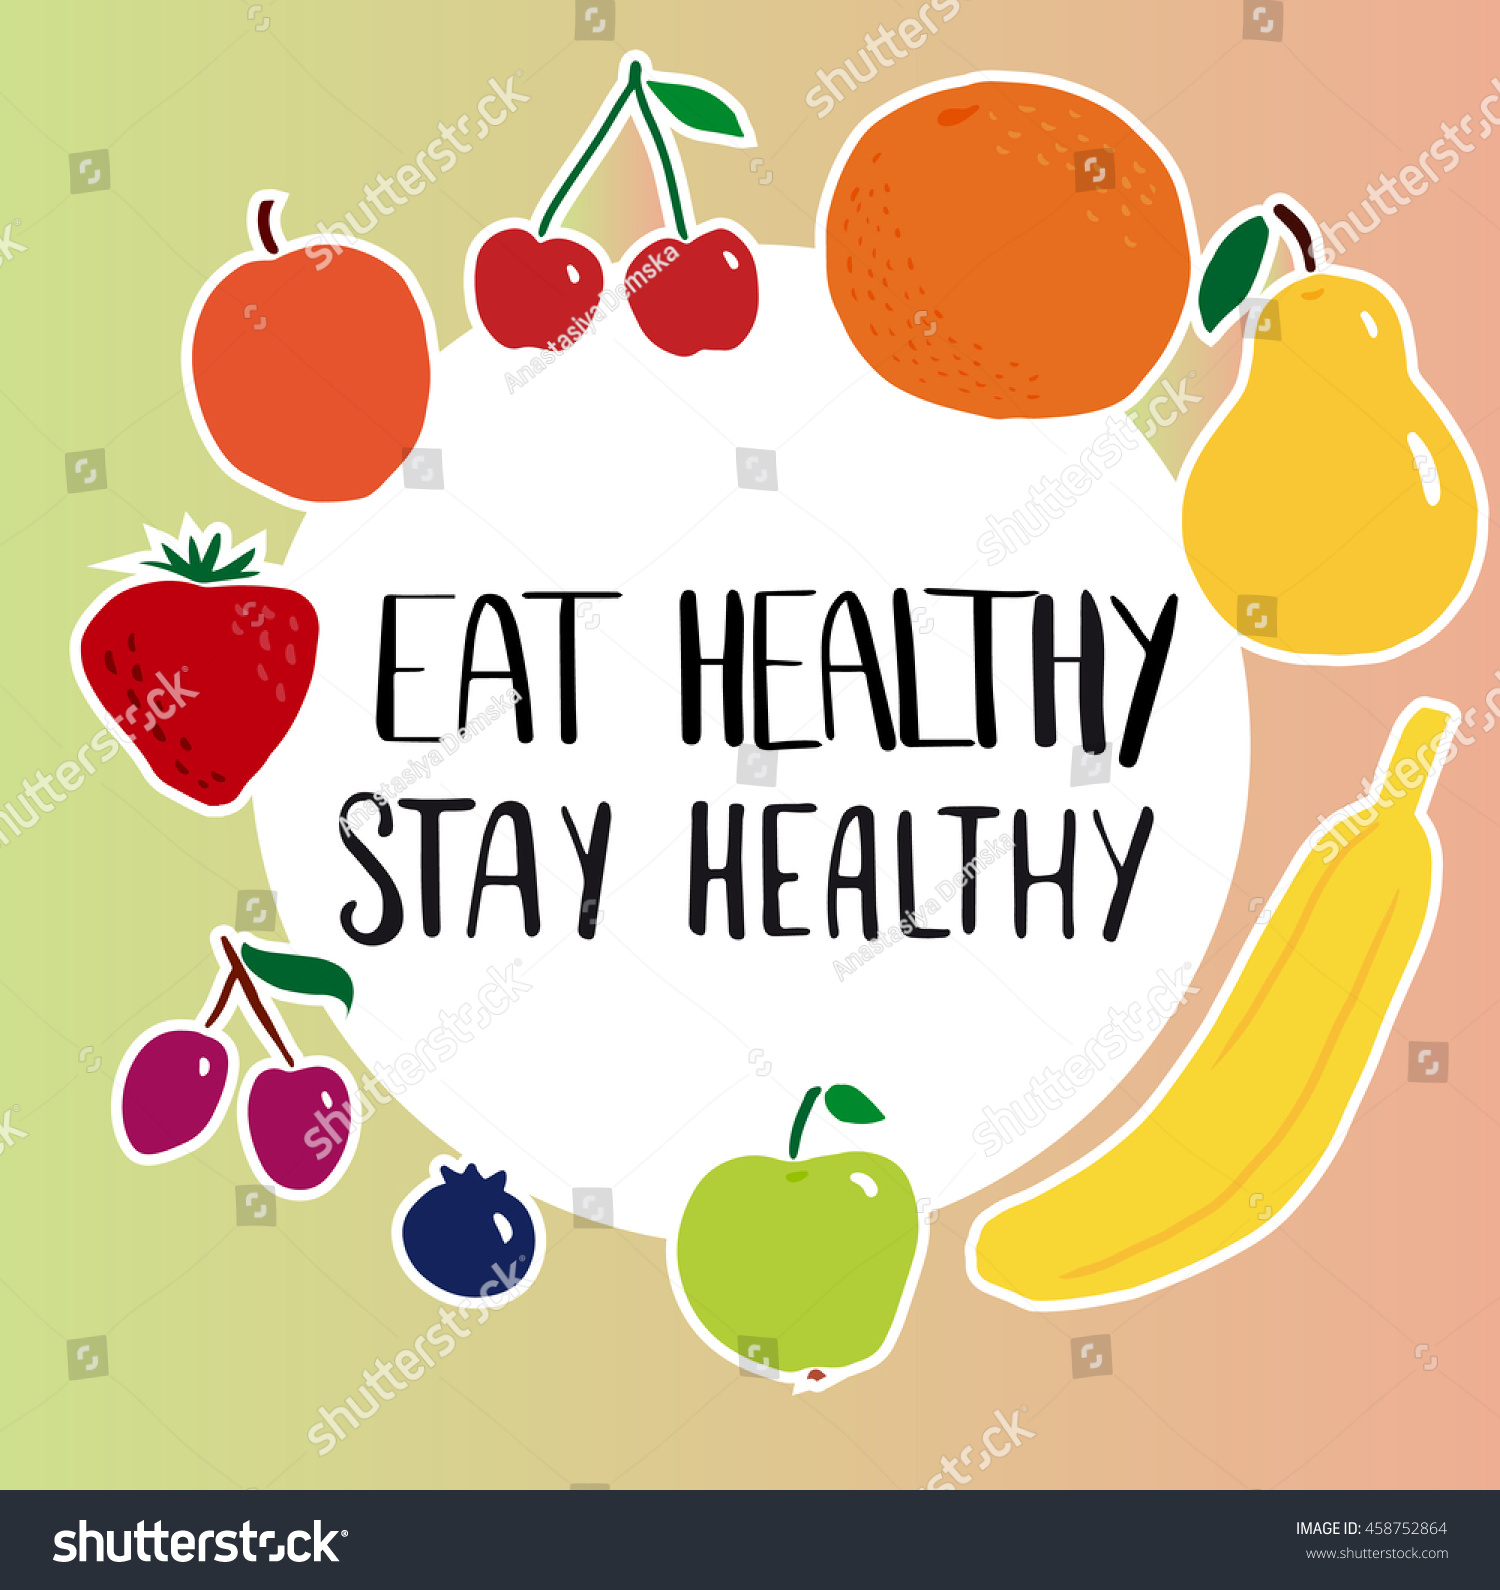 essay on eat healthy and stay healthy We asked our facebook fans to provide their favorite quotes about health and  wouldn't recognize as food stay away from  eat healthy foods.